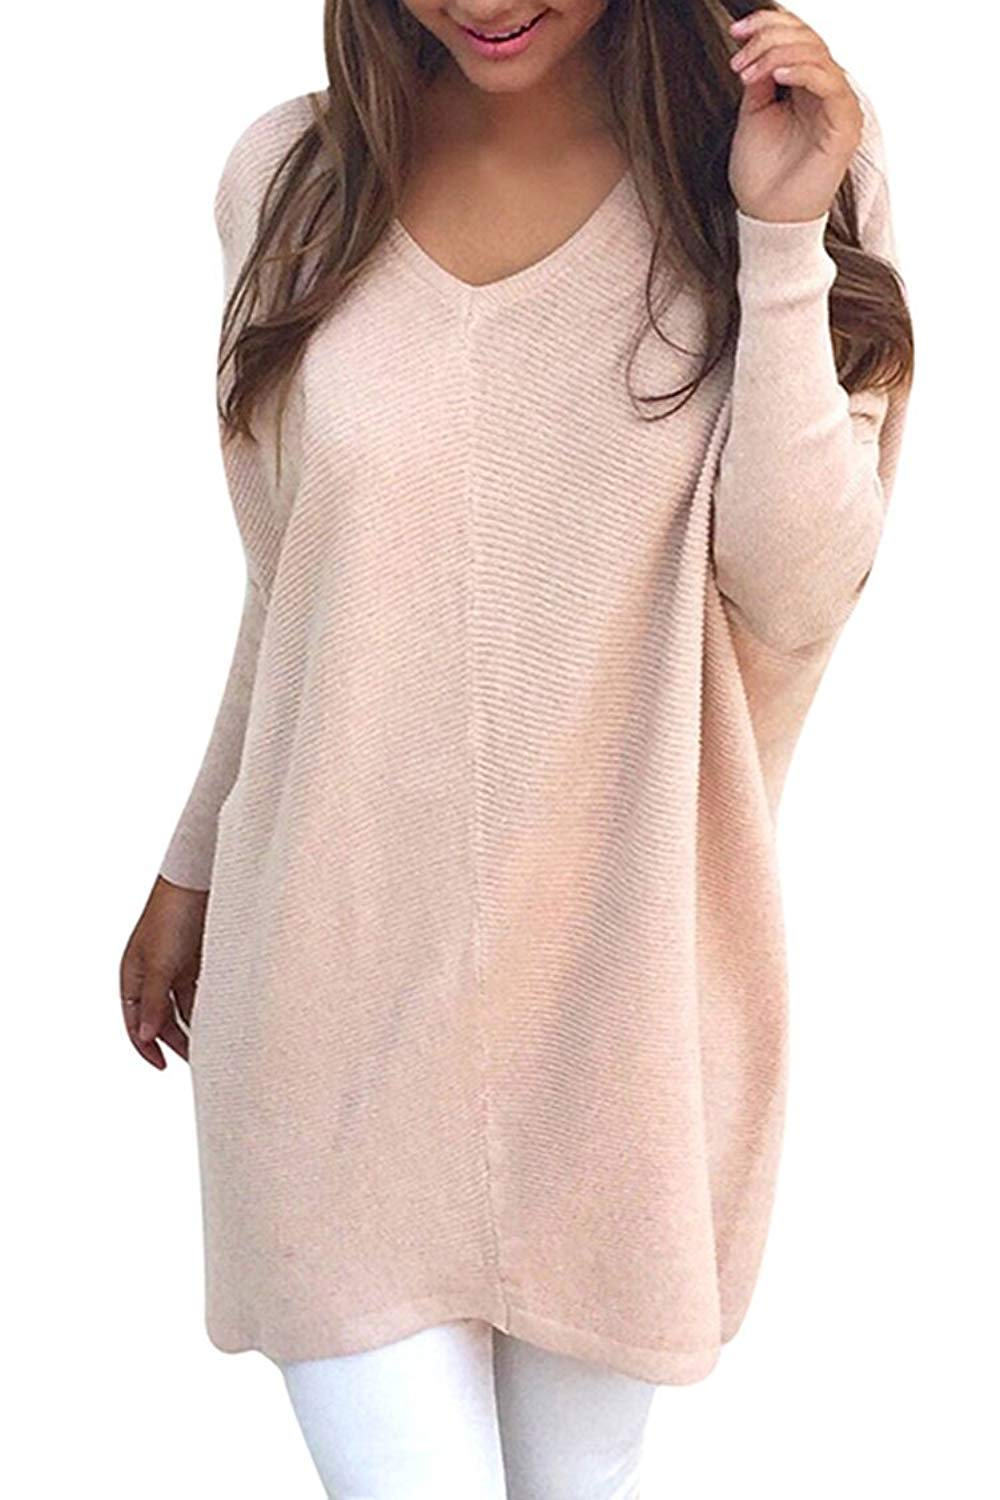 Rela Bota Women's V Neck Oversized Knitted Loose Knitwear Sweater Jumper Pullovers XXX-Large Pink